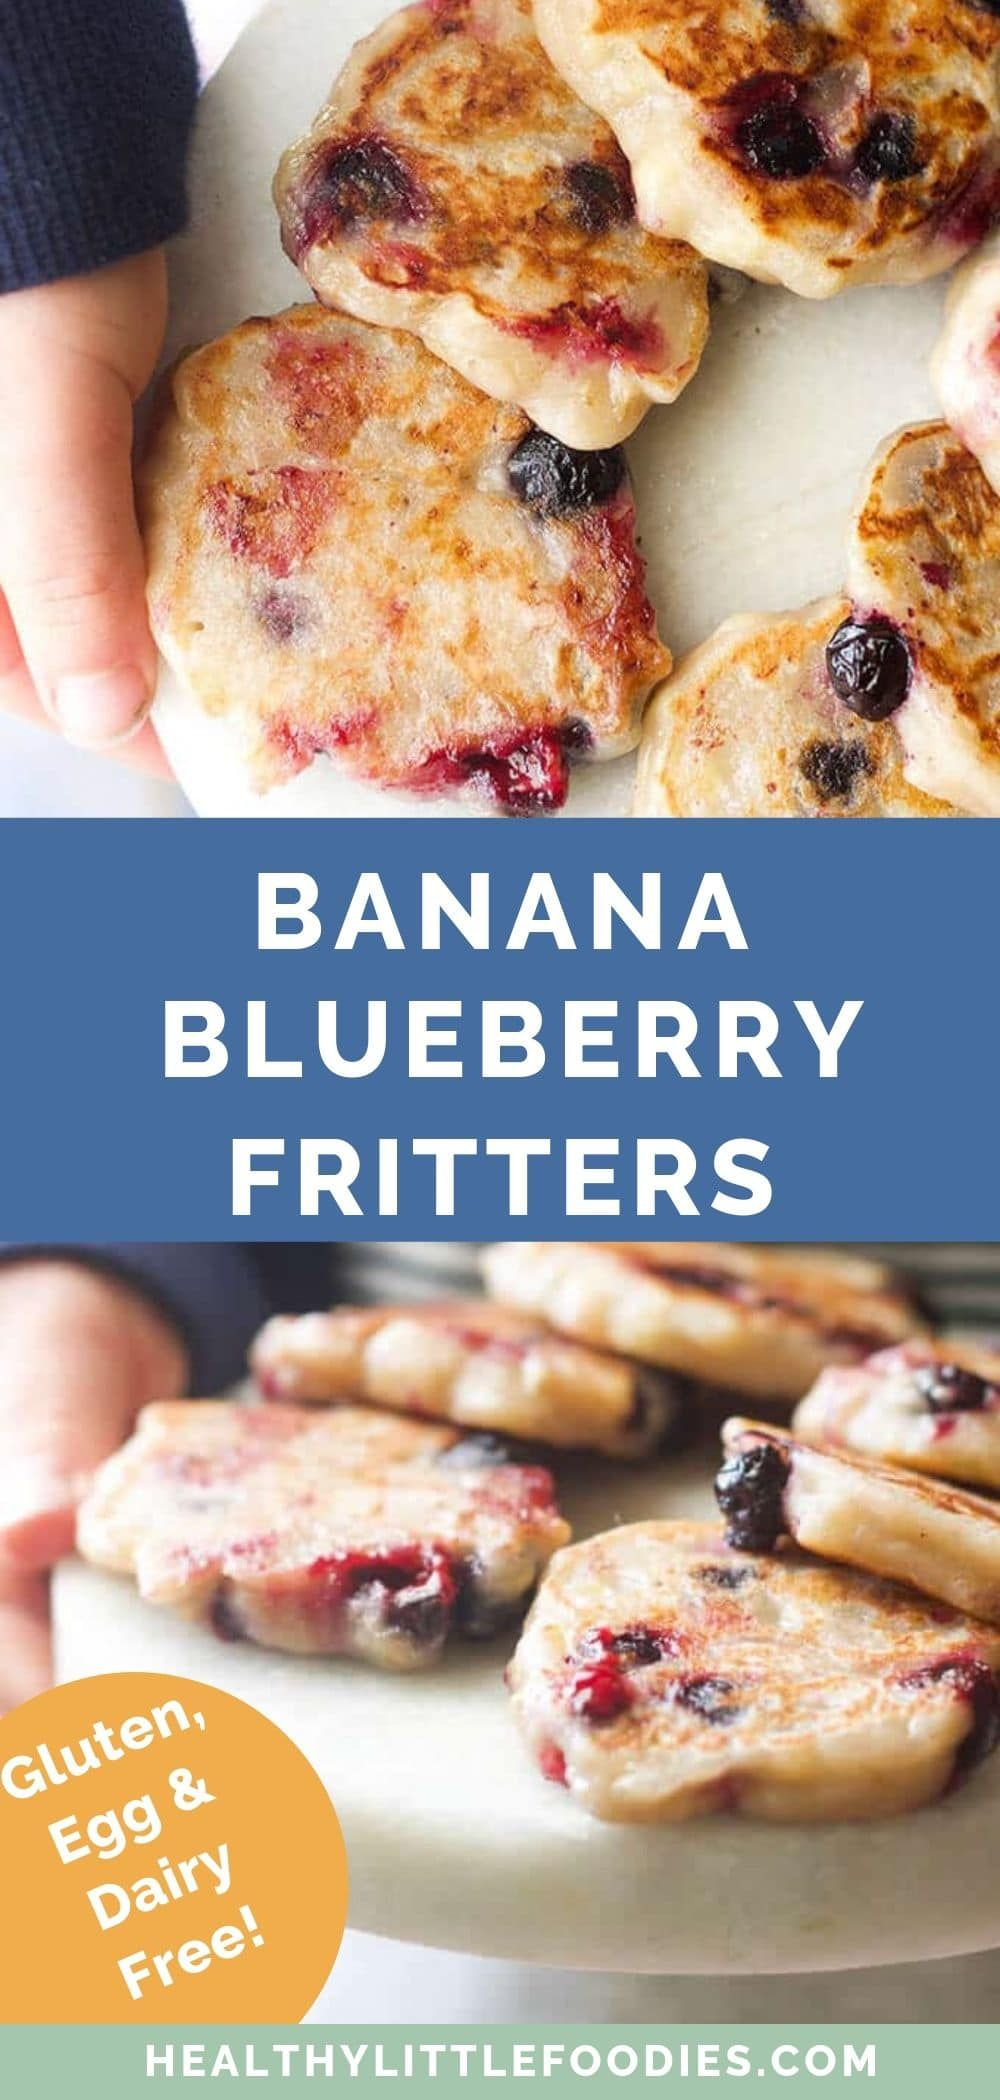 Banana Blueberry Fritters – Only 3 ingredients, great for baby-led weaning